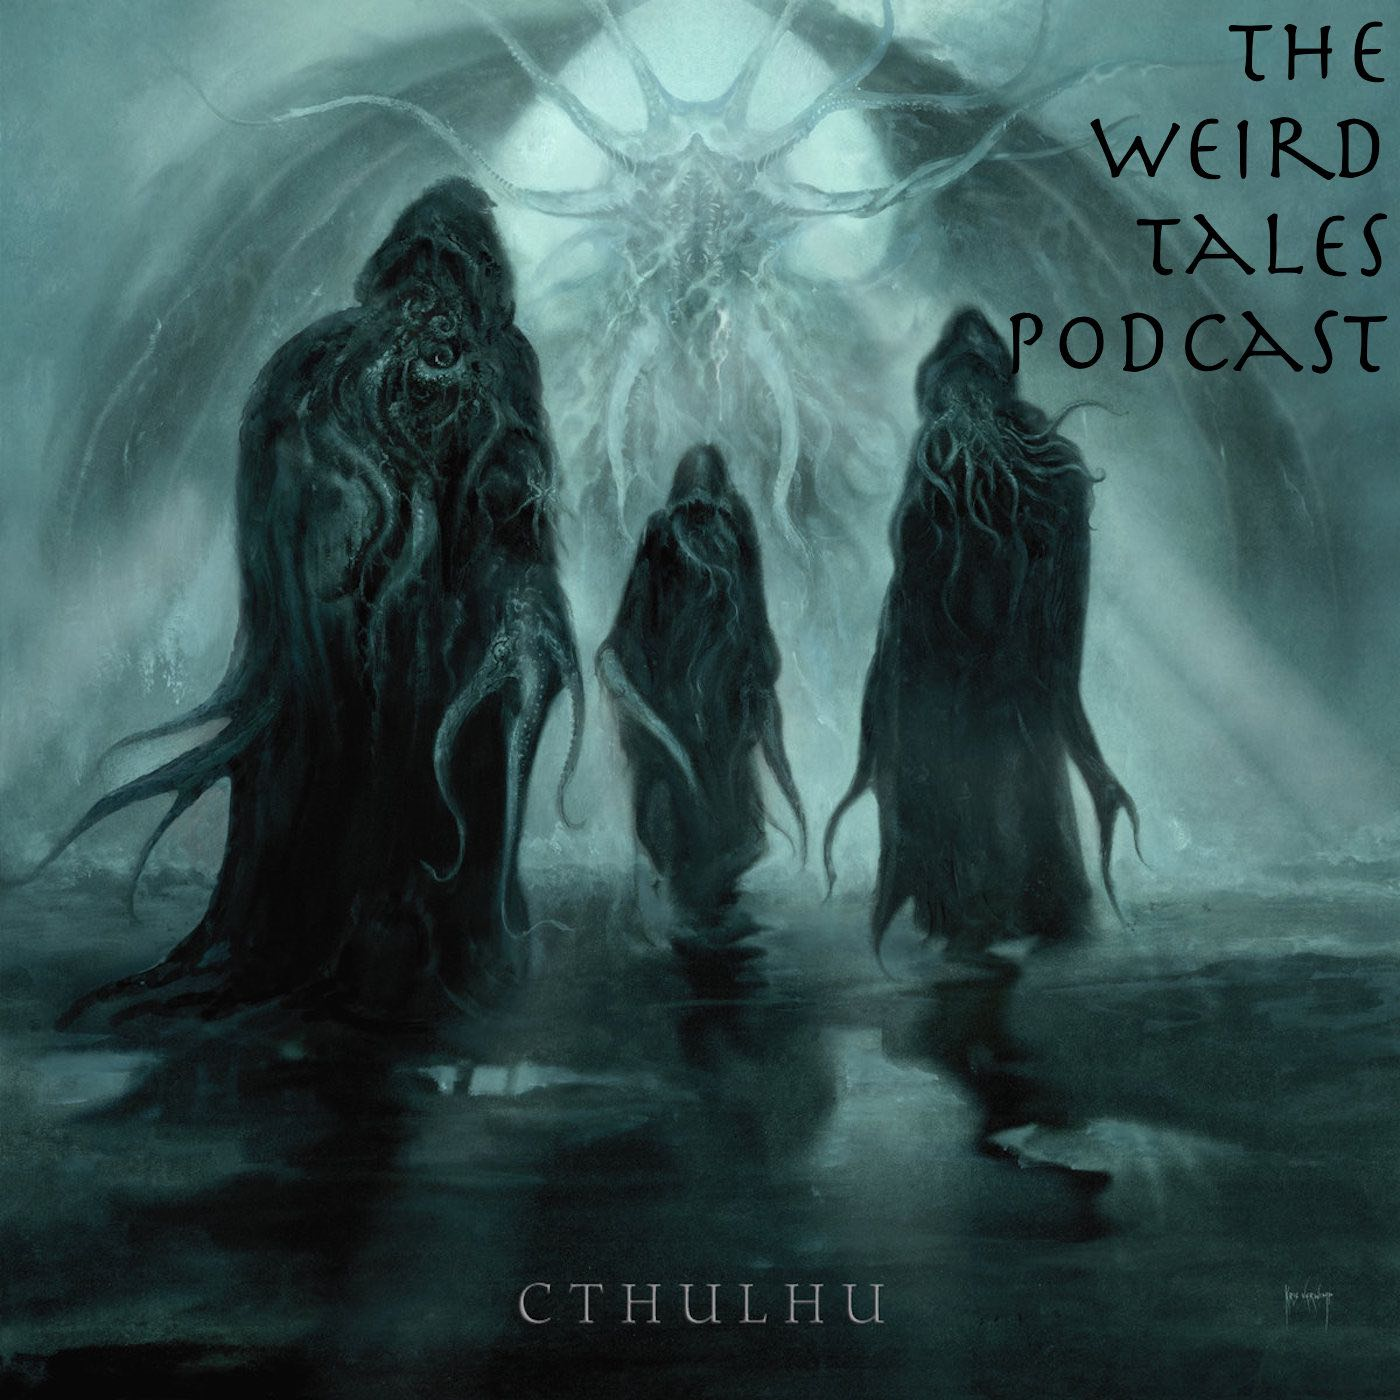 The Weird Tales Podcast